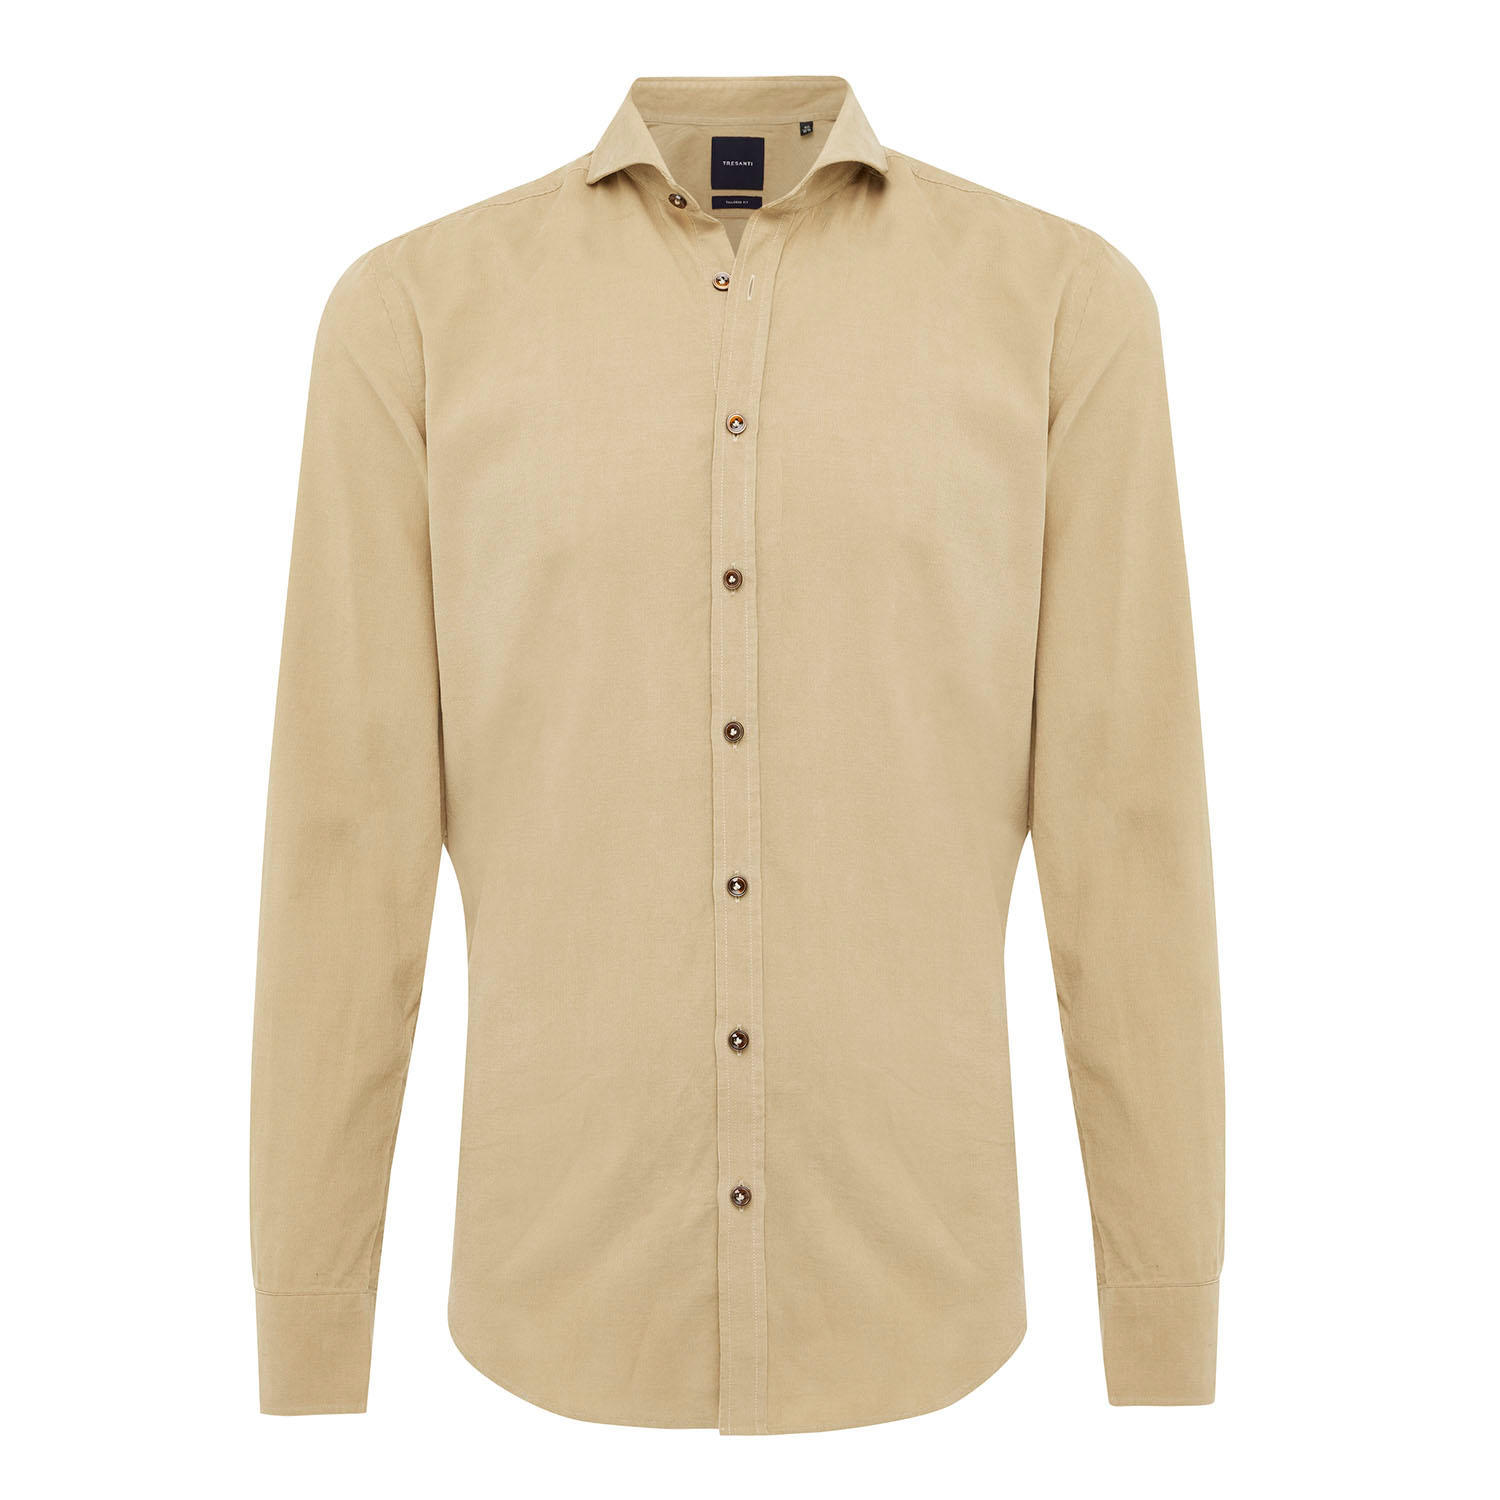 EMRIC | Shirt with button closure and baby cord in beige